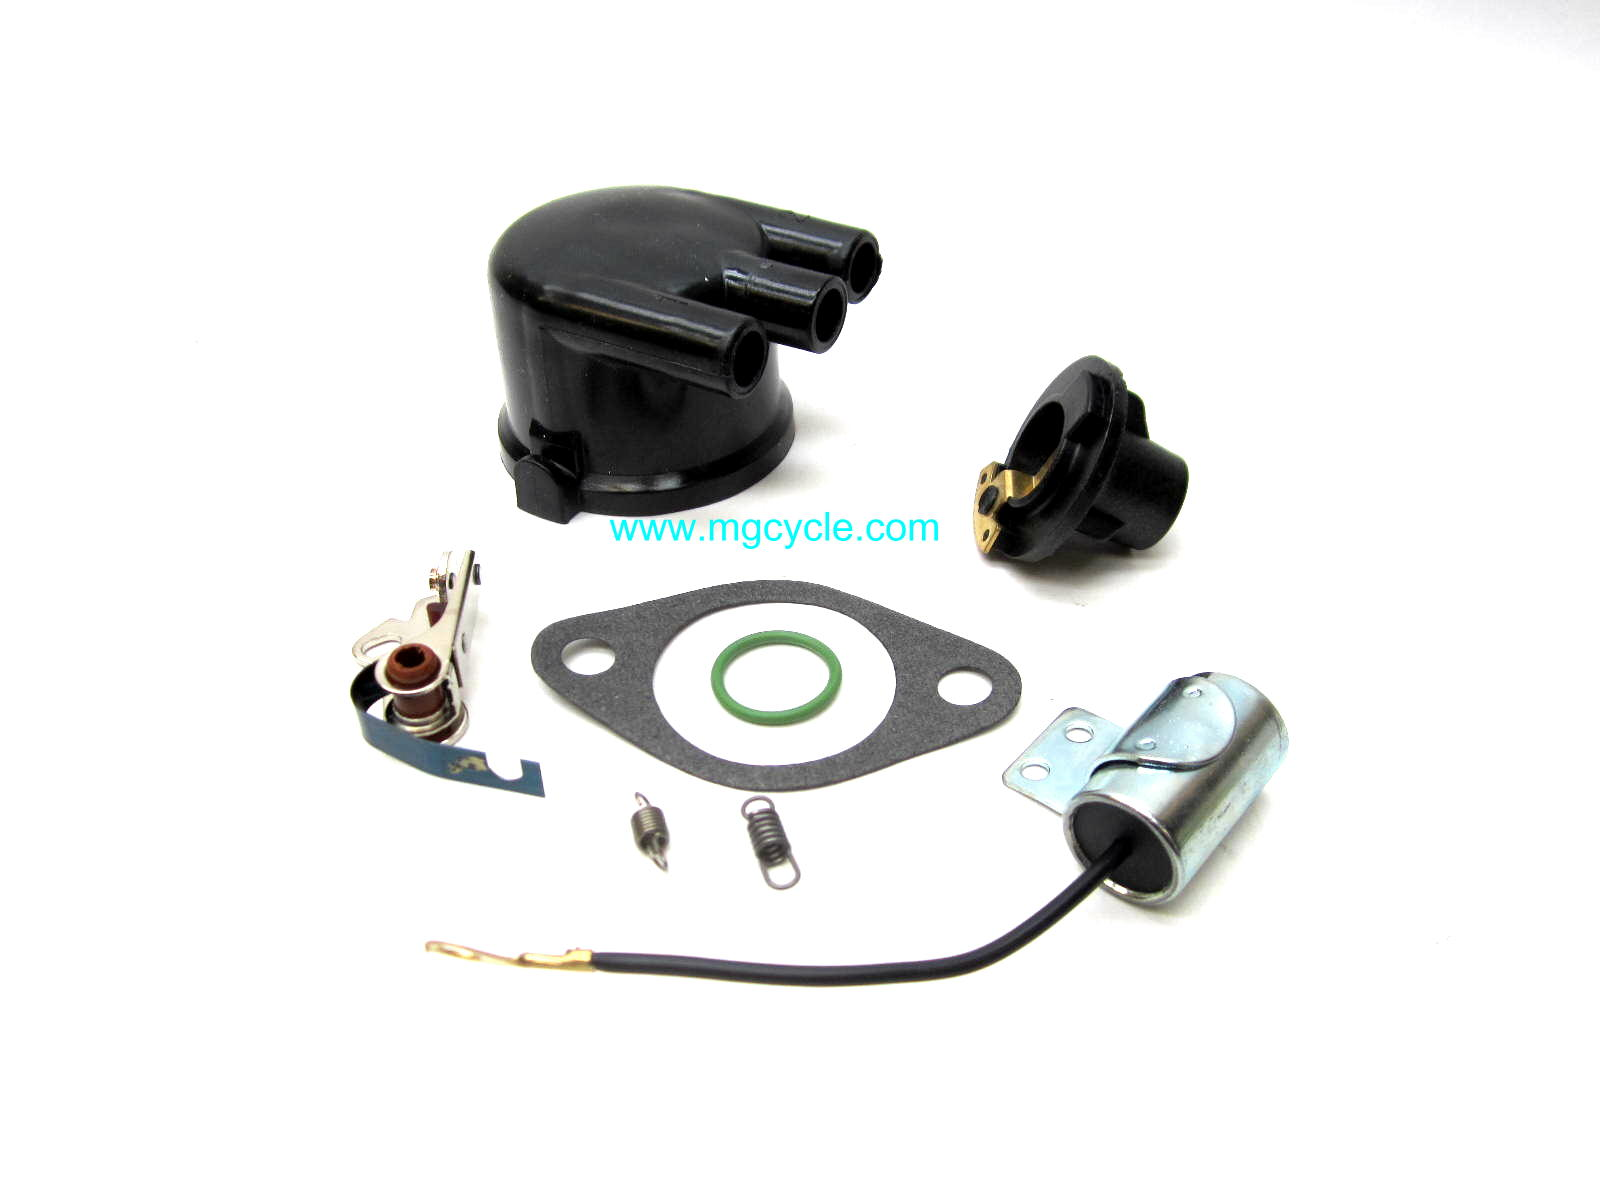 Single point distributor kit V700 Eldo Ambassador 850GT 750 Spec